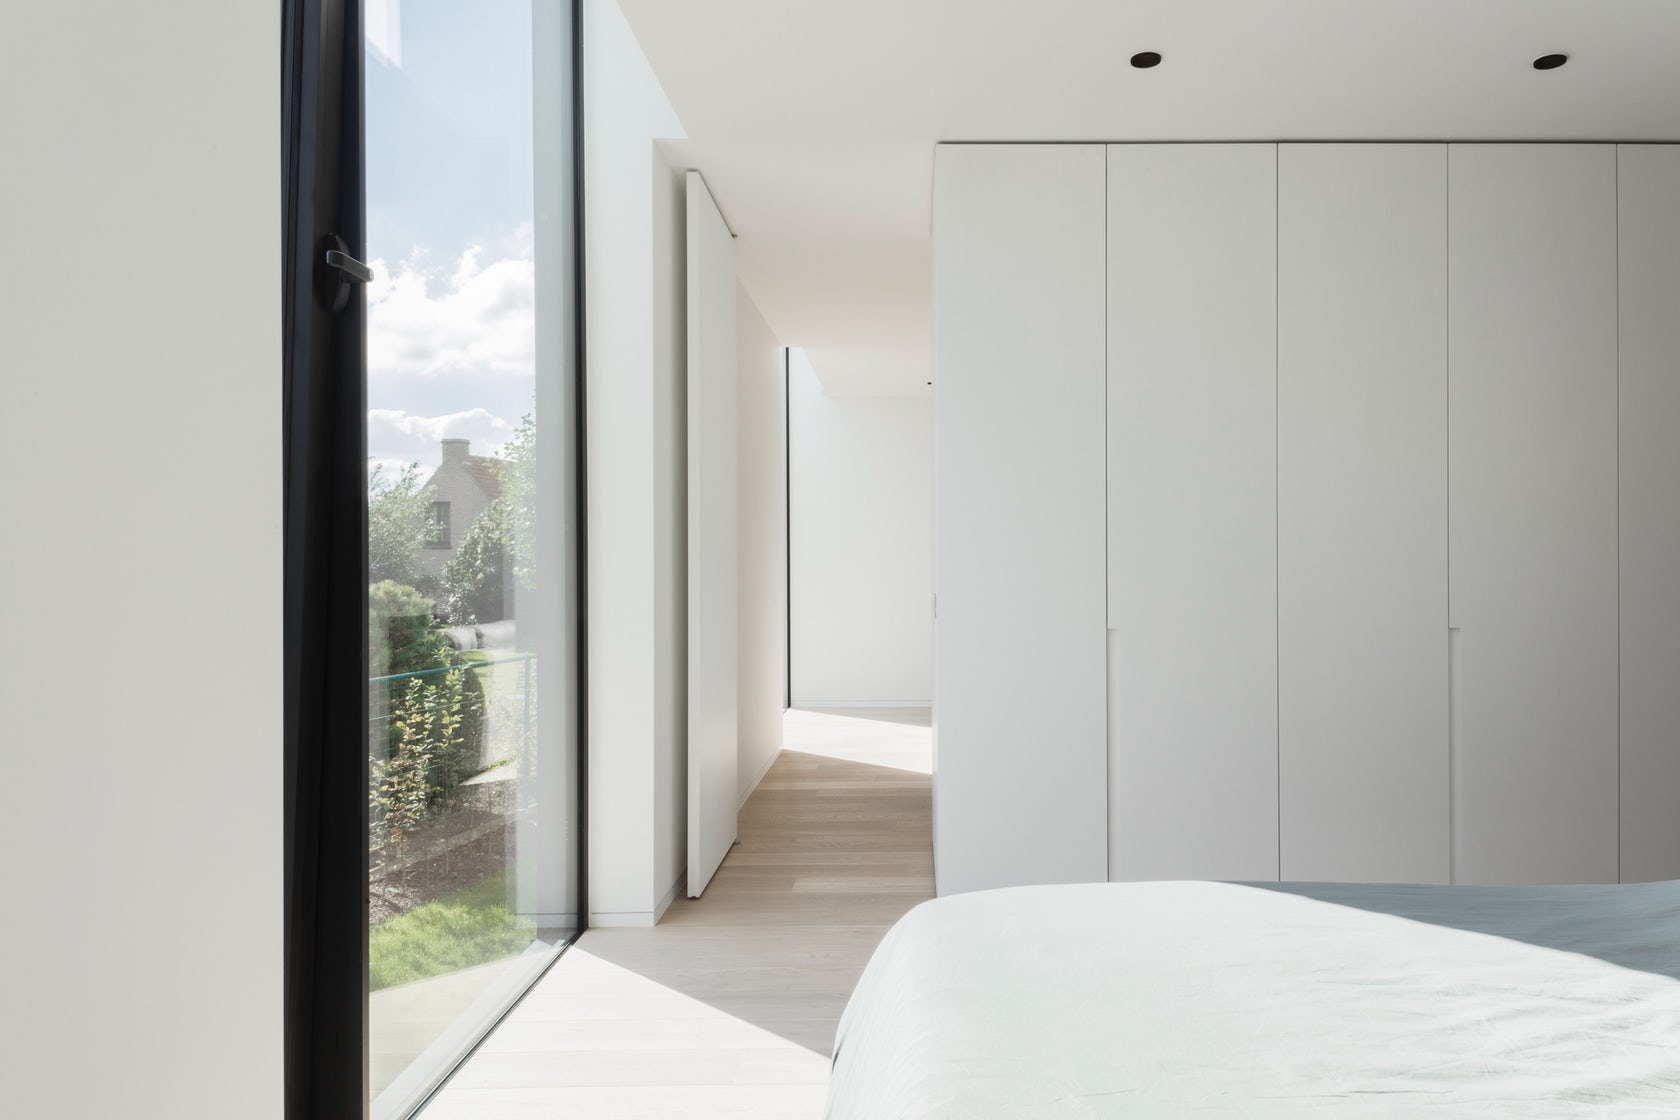 Home dw on architizer